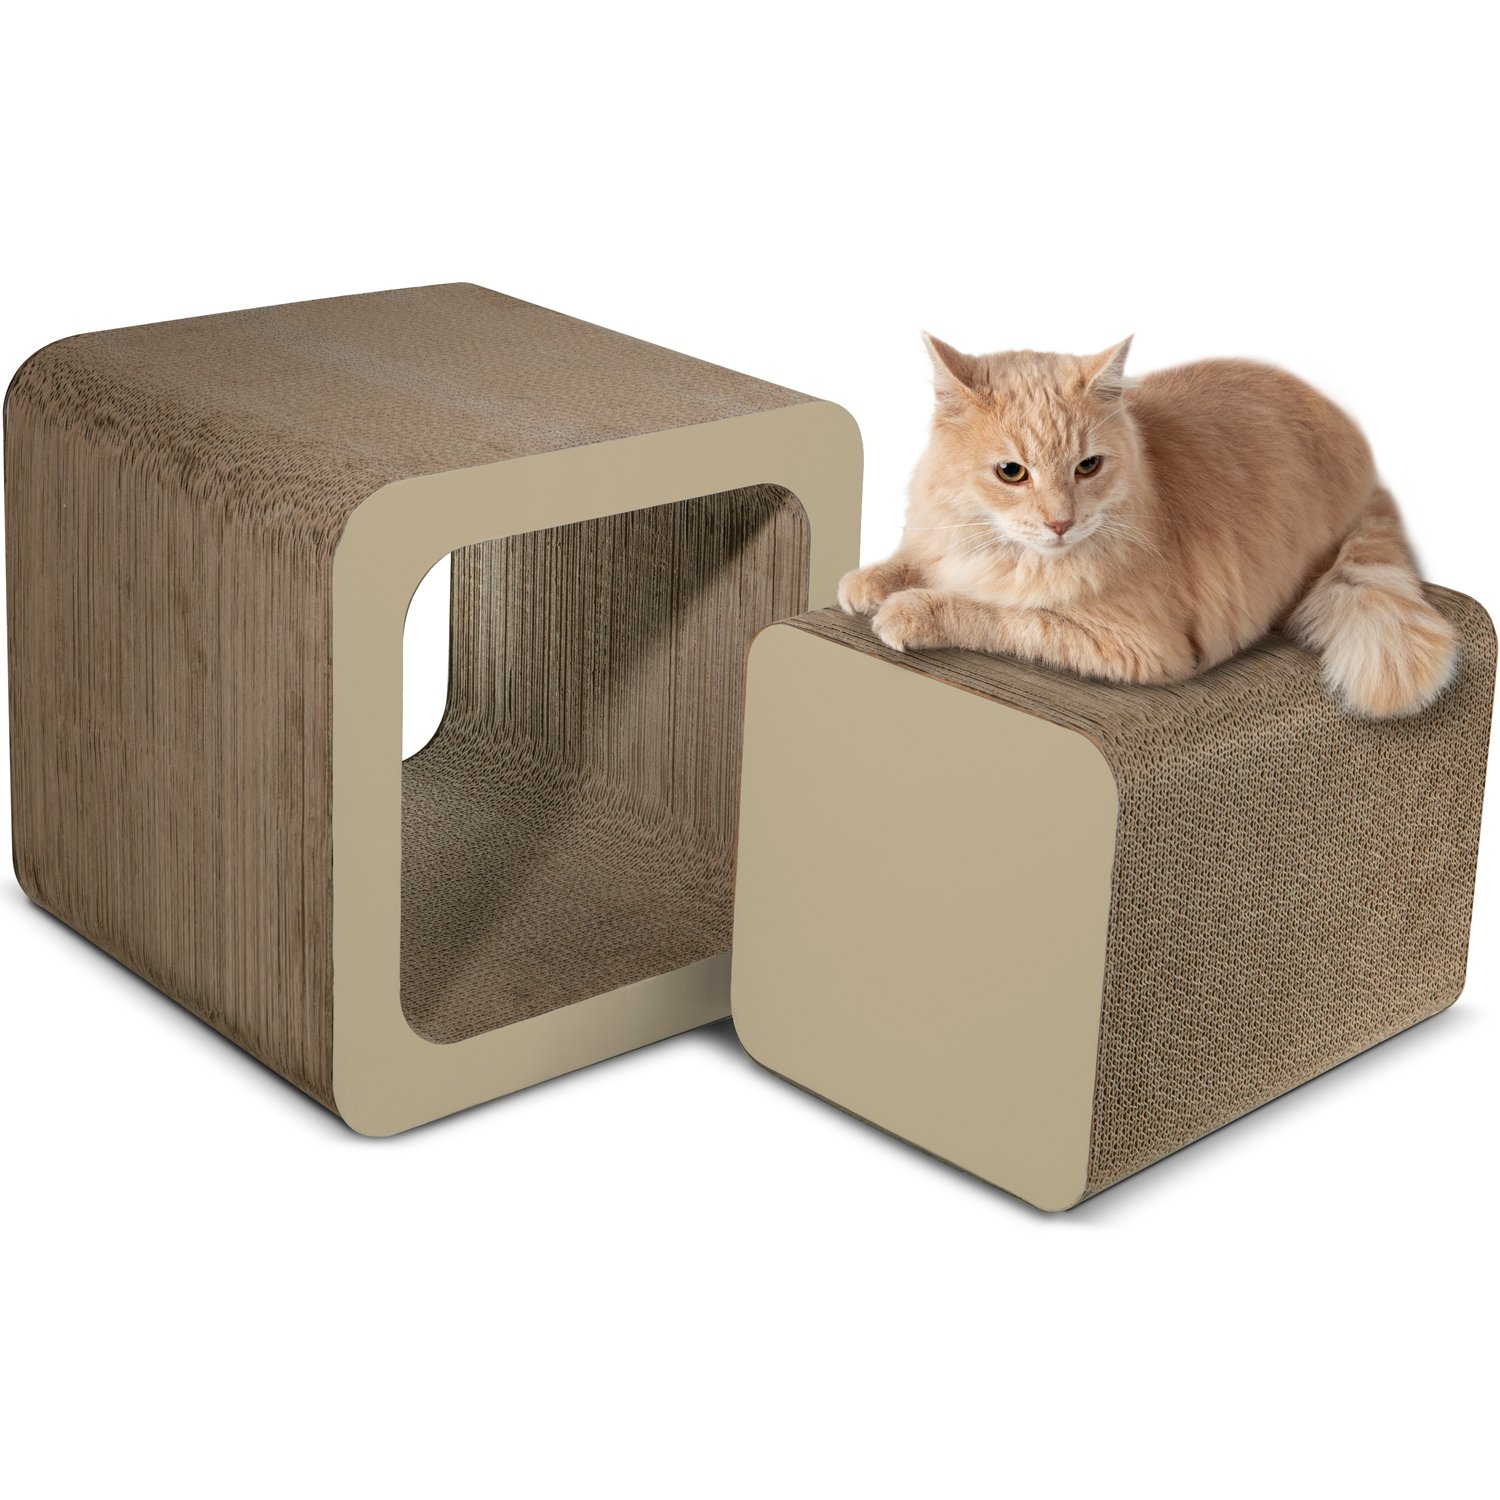 Paws & Pals Square Cat Scratcher Post and Lounger - 2-in-1 Removable Cardboard Scratching Cube Insert with Catnip - Beige by Paws & Pals